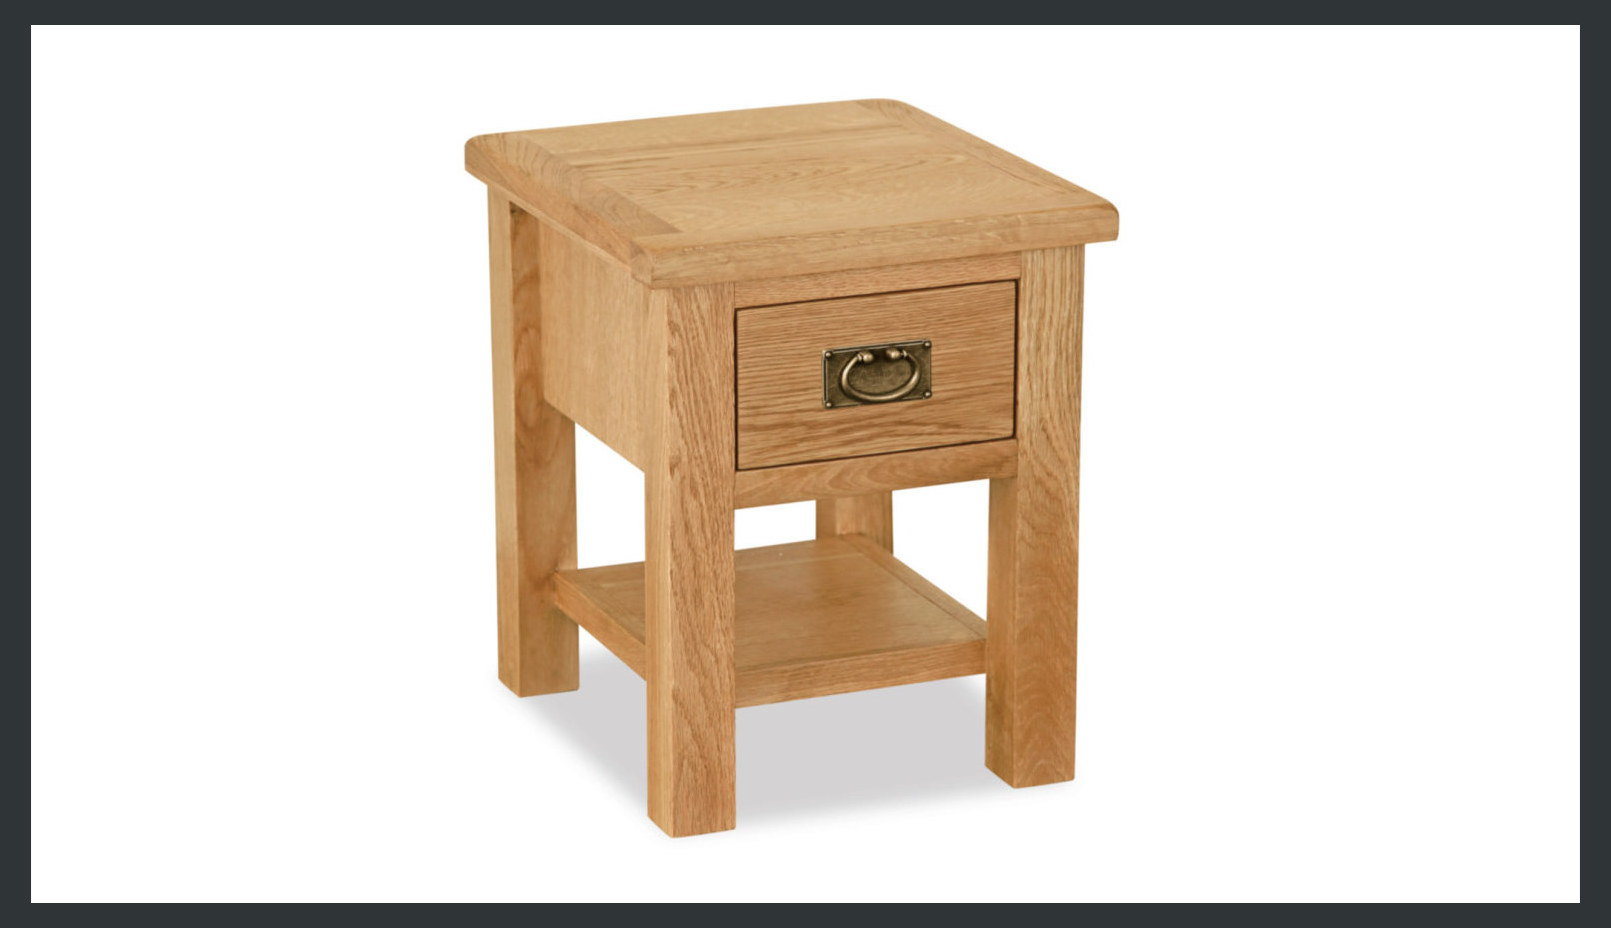 Rustique Home London Oak 100% Solid wood Lamp Table in natural oak color. Antique Metal handles. There is a drawer on the top and a shelf at the bottom for storage.